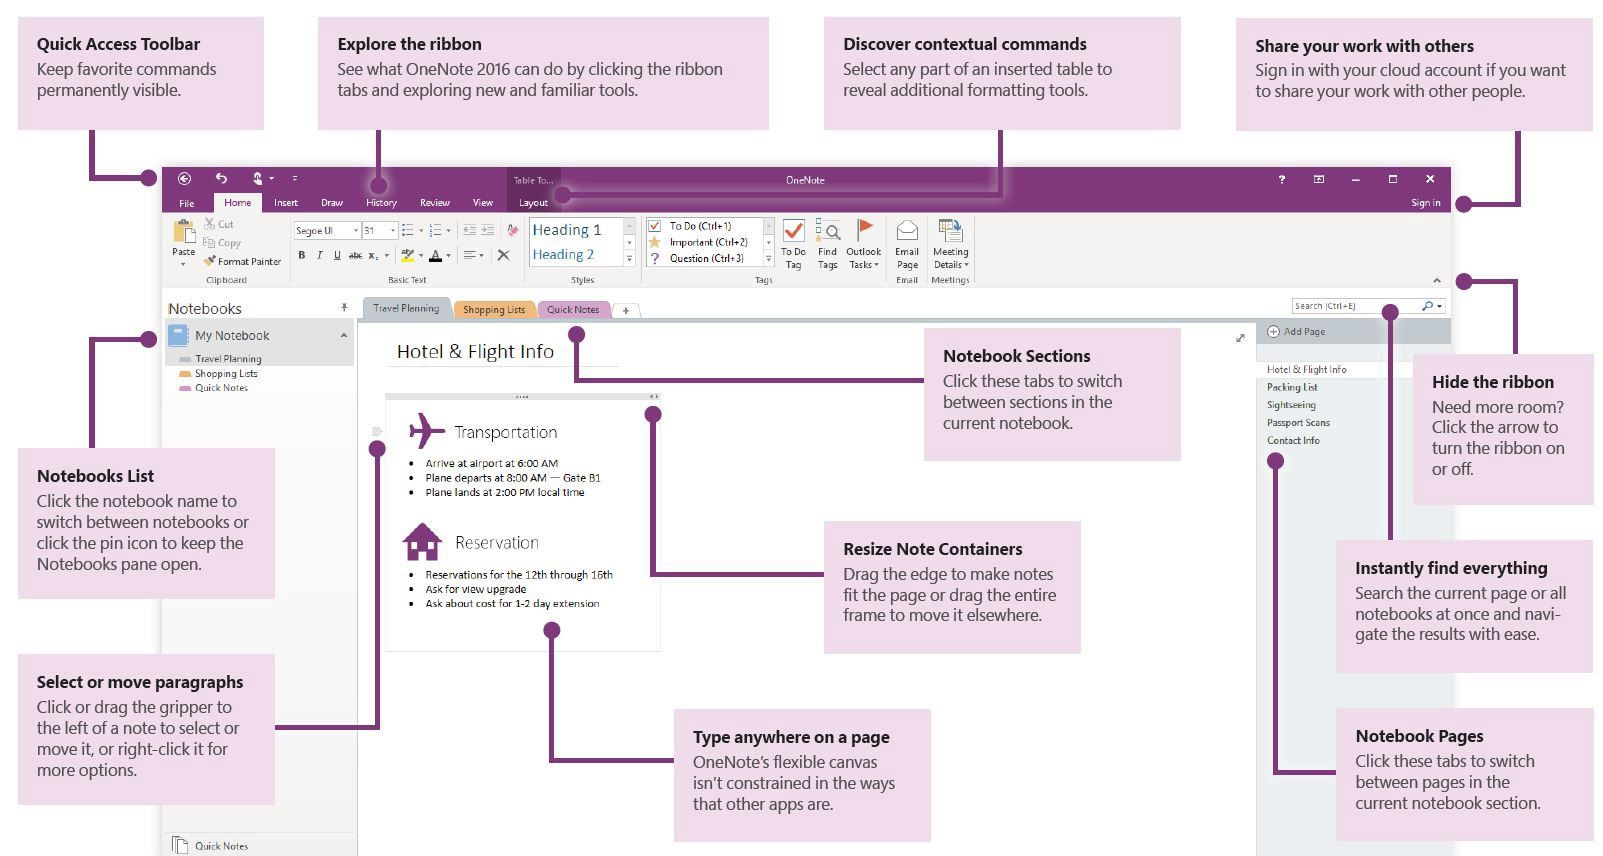 002 Singular Onenote 2010 Project Management Template High Resolution  Templates Download 2016Full